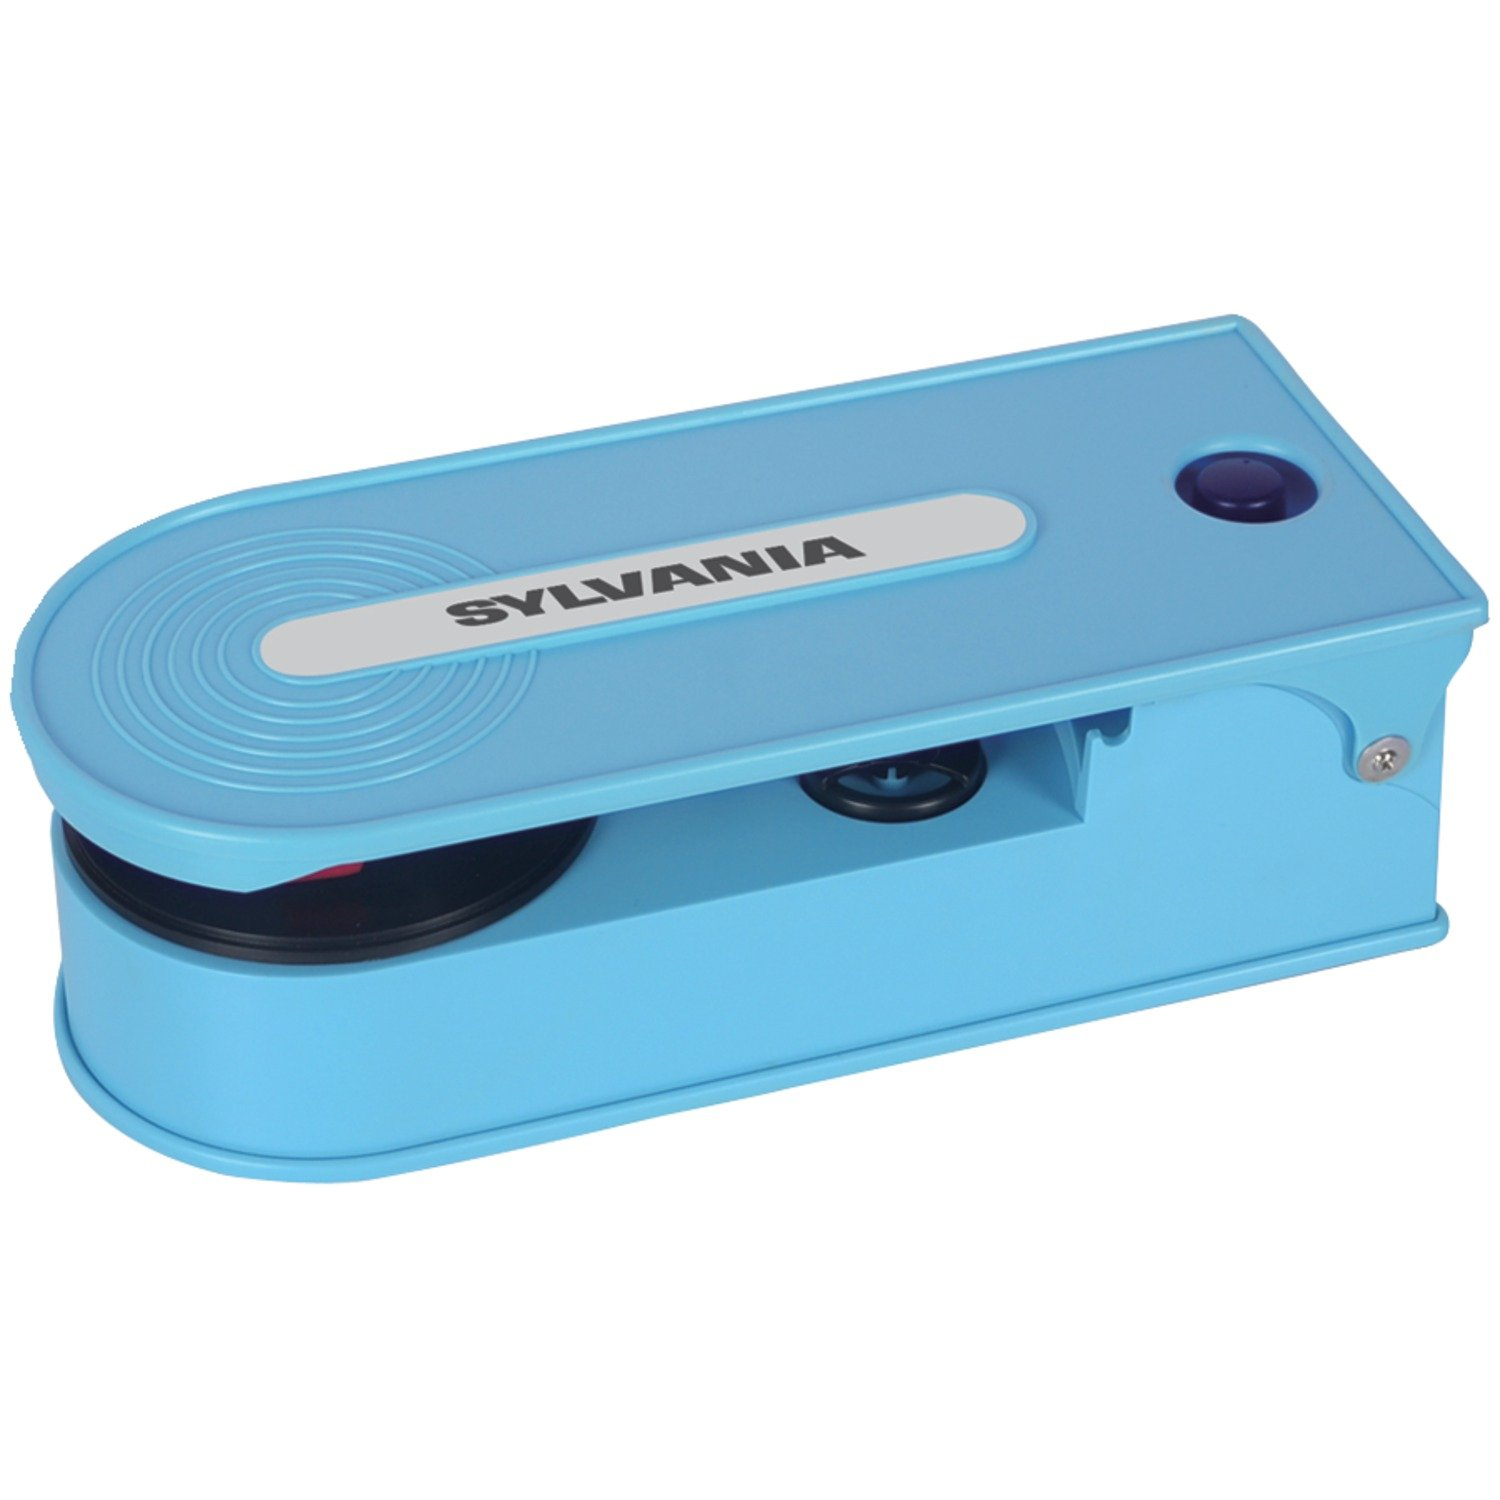 Sylvania Turntable Record Player with USB Encoding, Blue